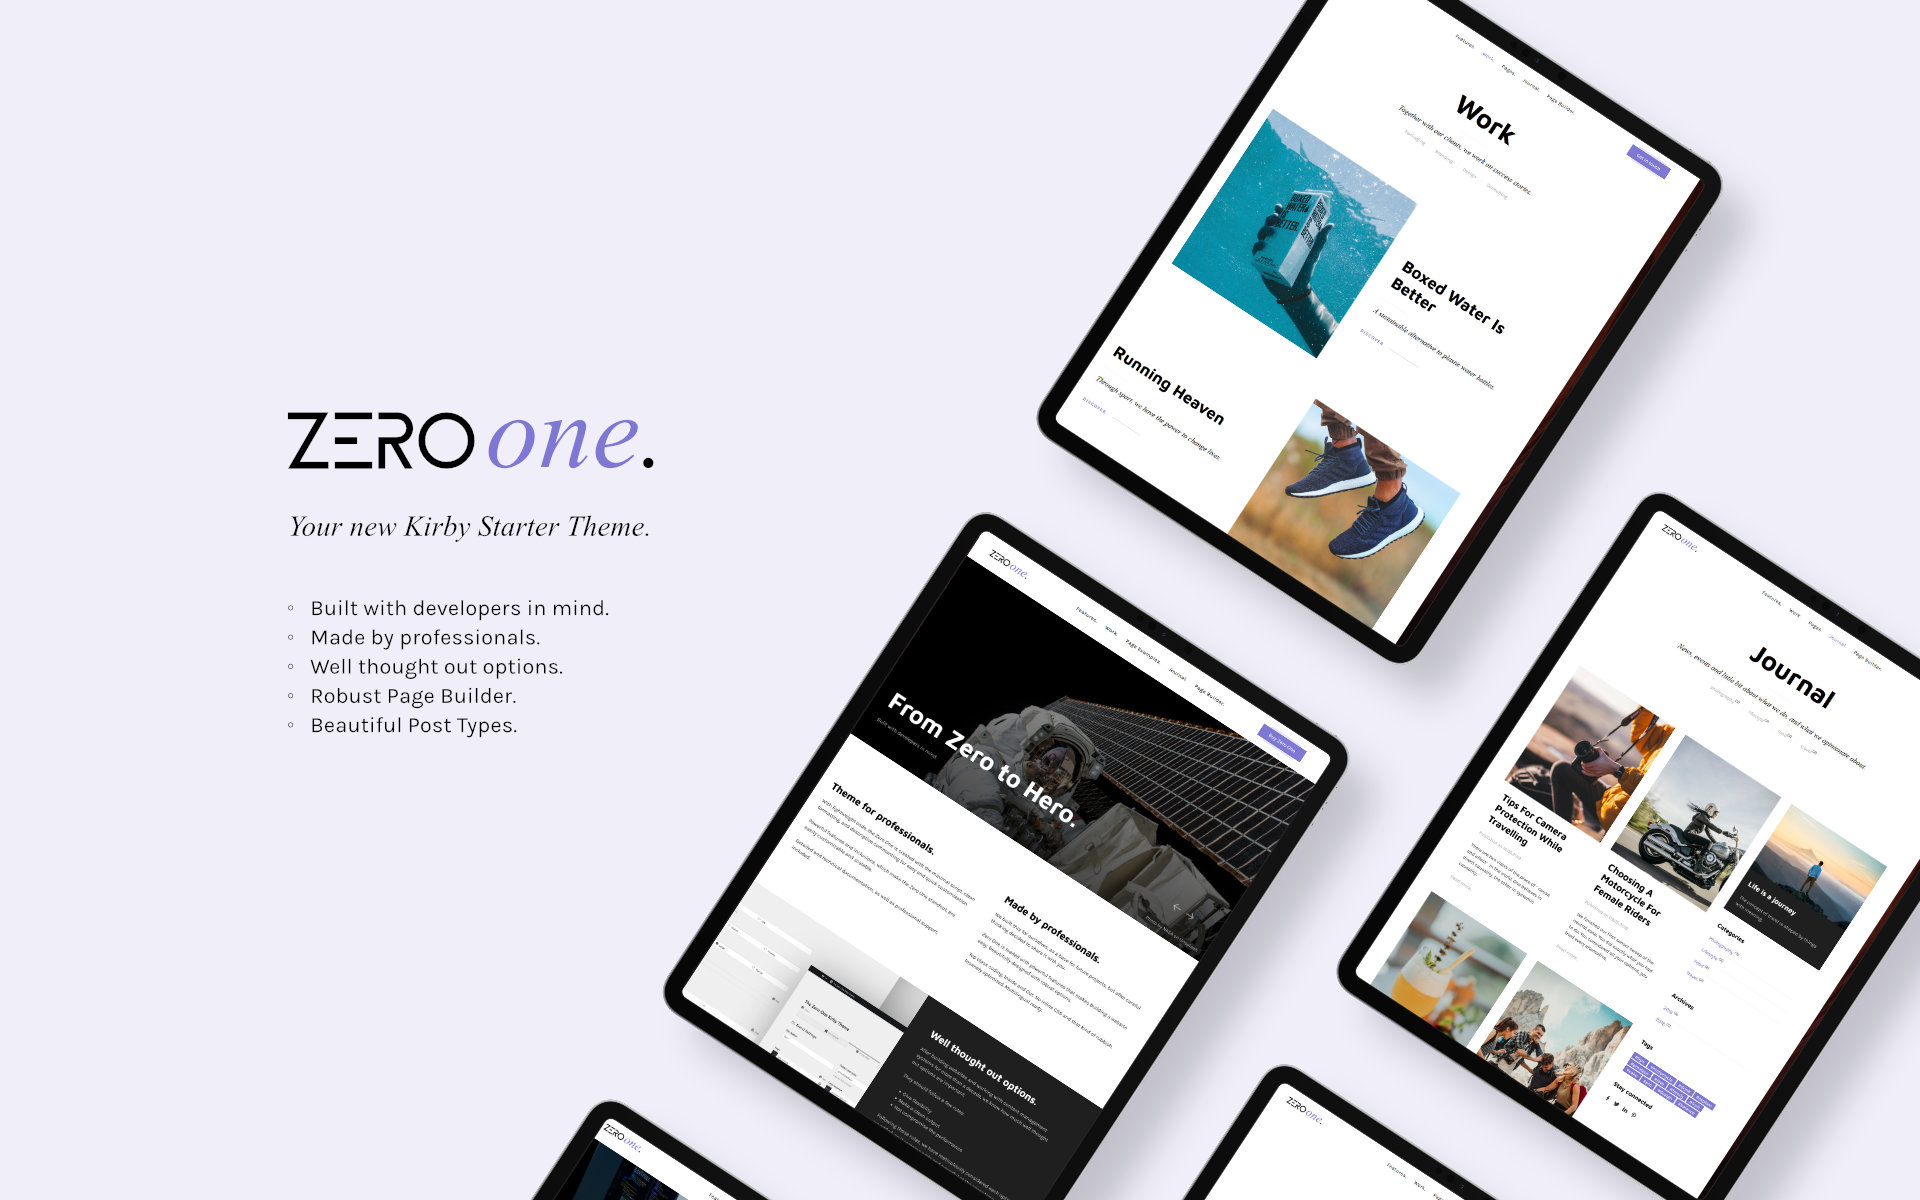 The Zero One theme features